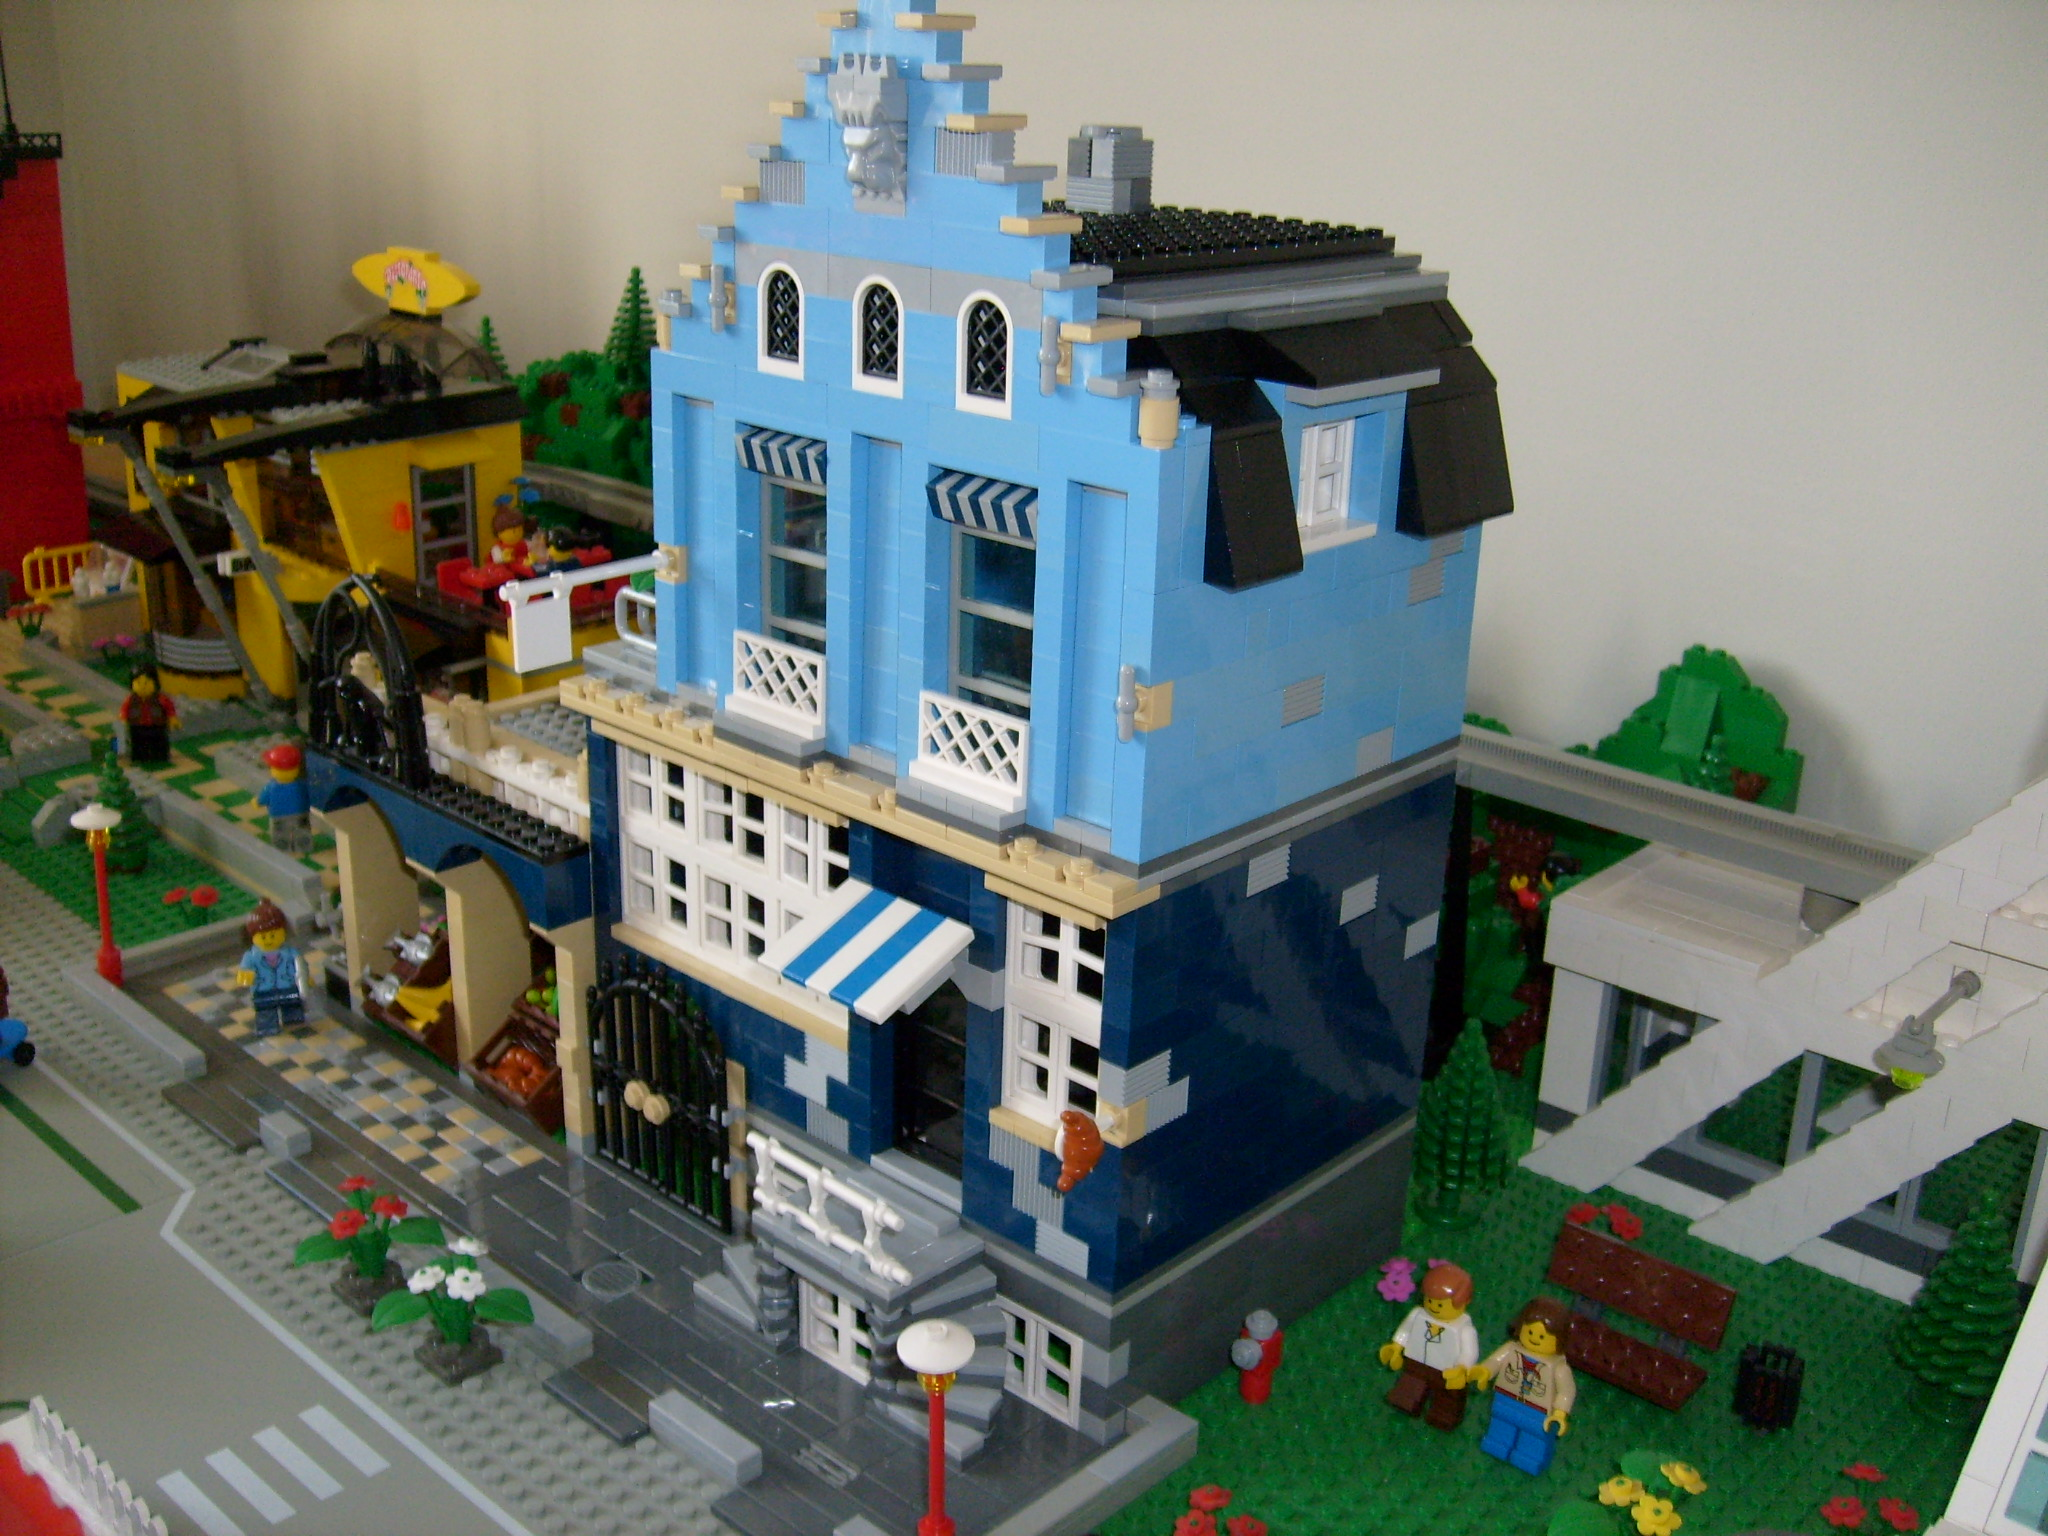 of The Modular Buildings